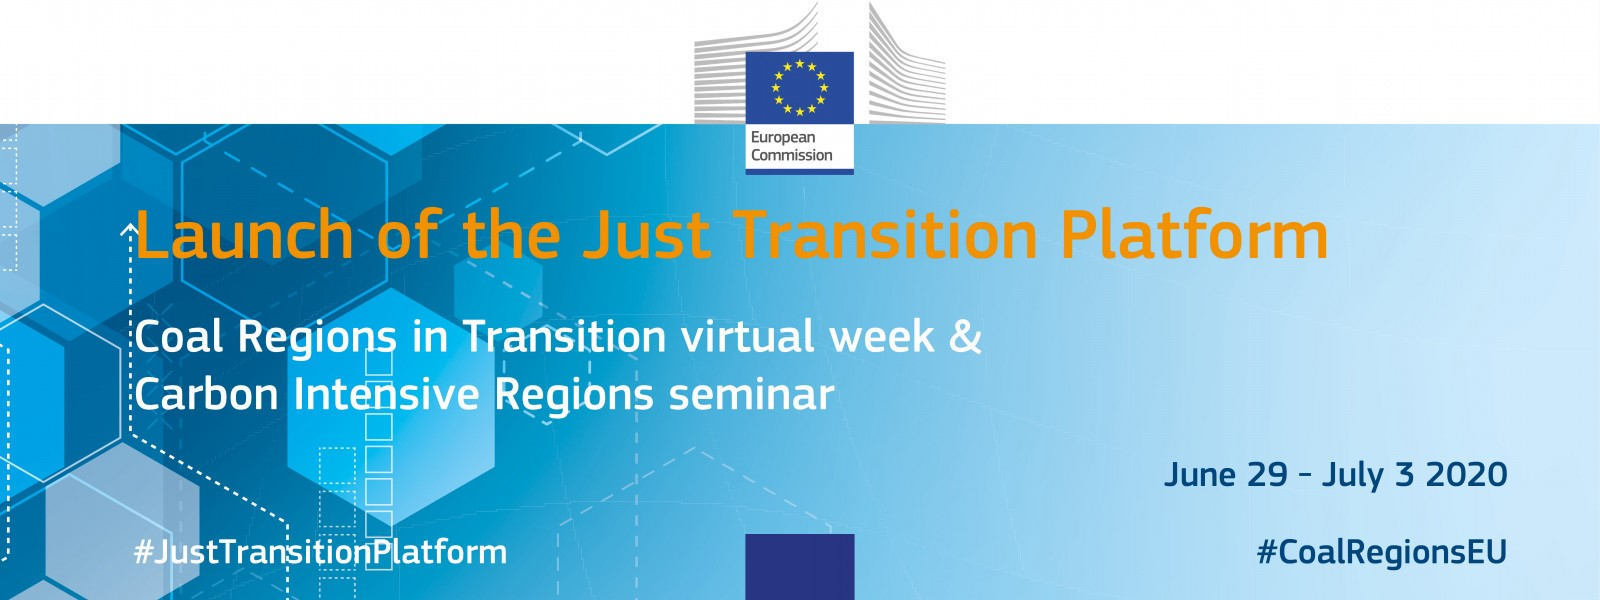 Launch of Just Transitions Platform: Coal Regions in Transition